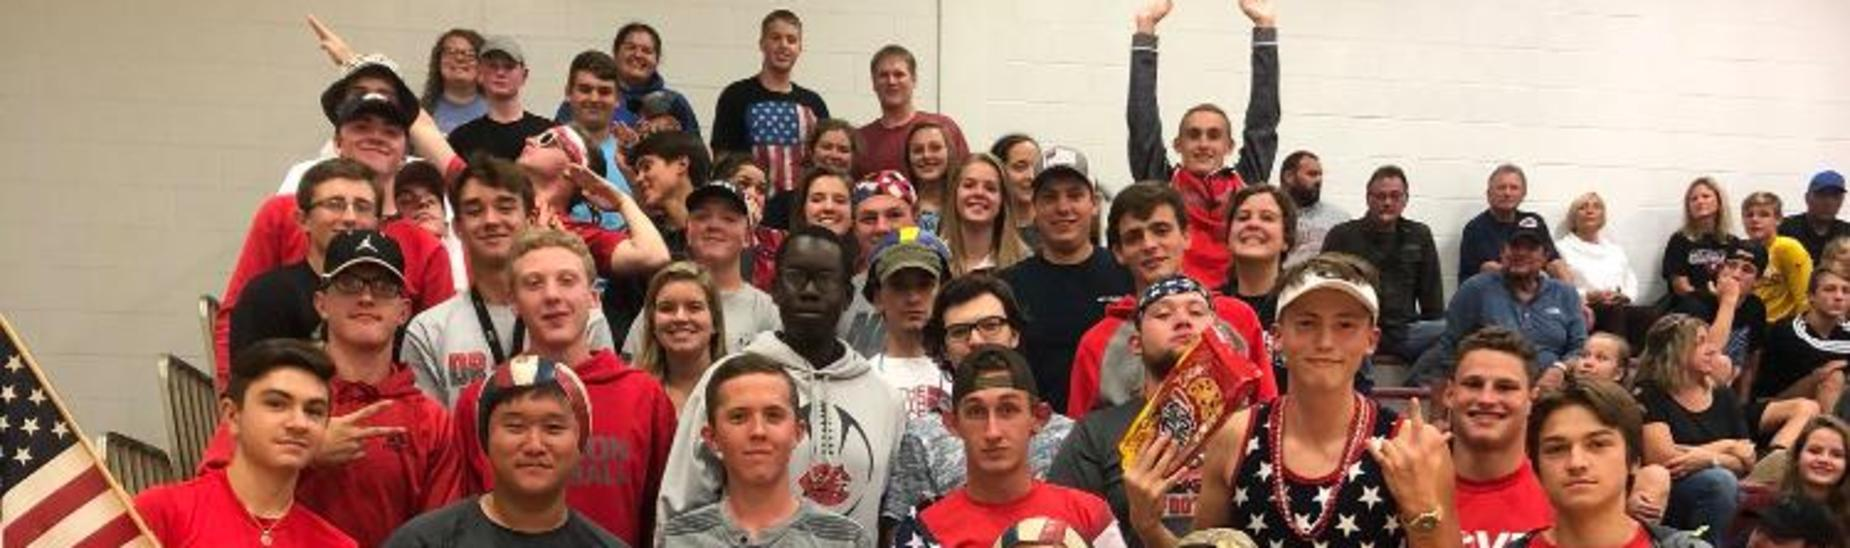 CHS Student Section!